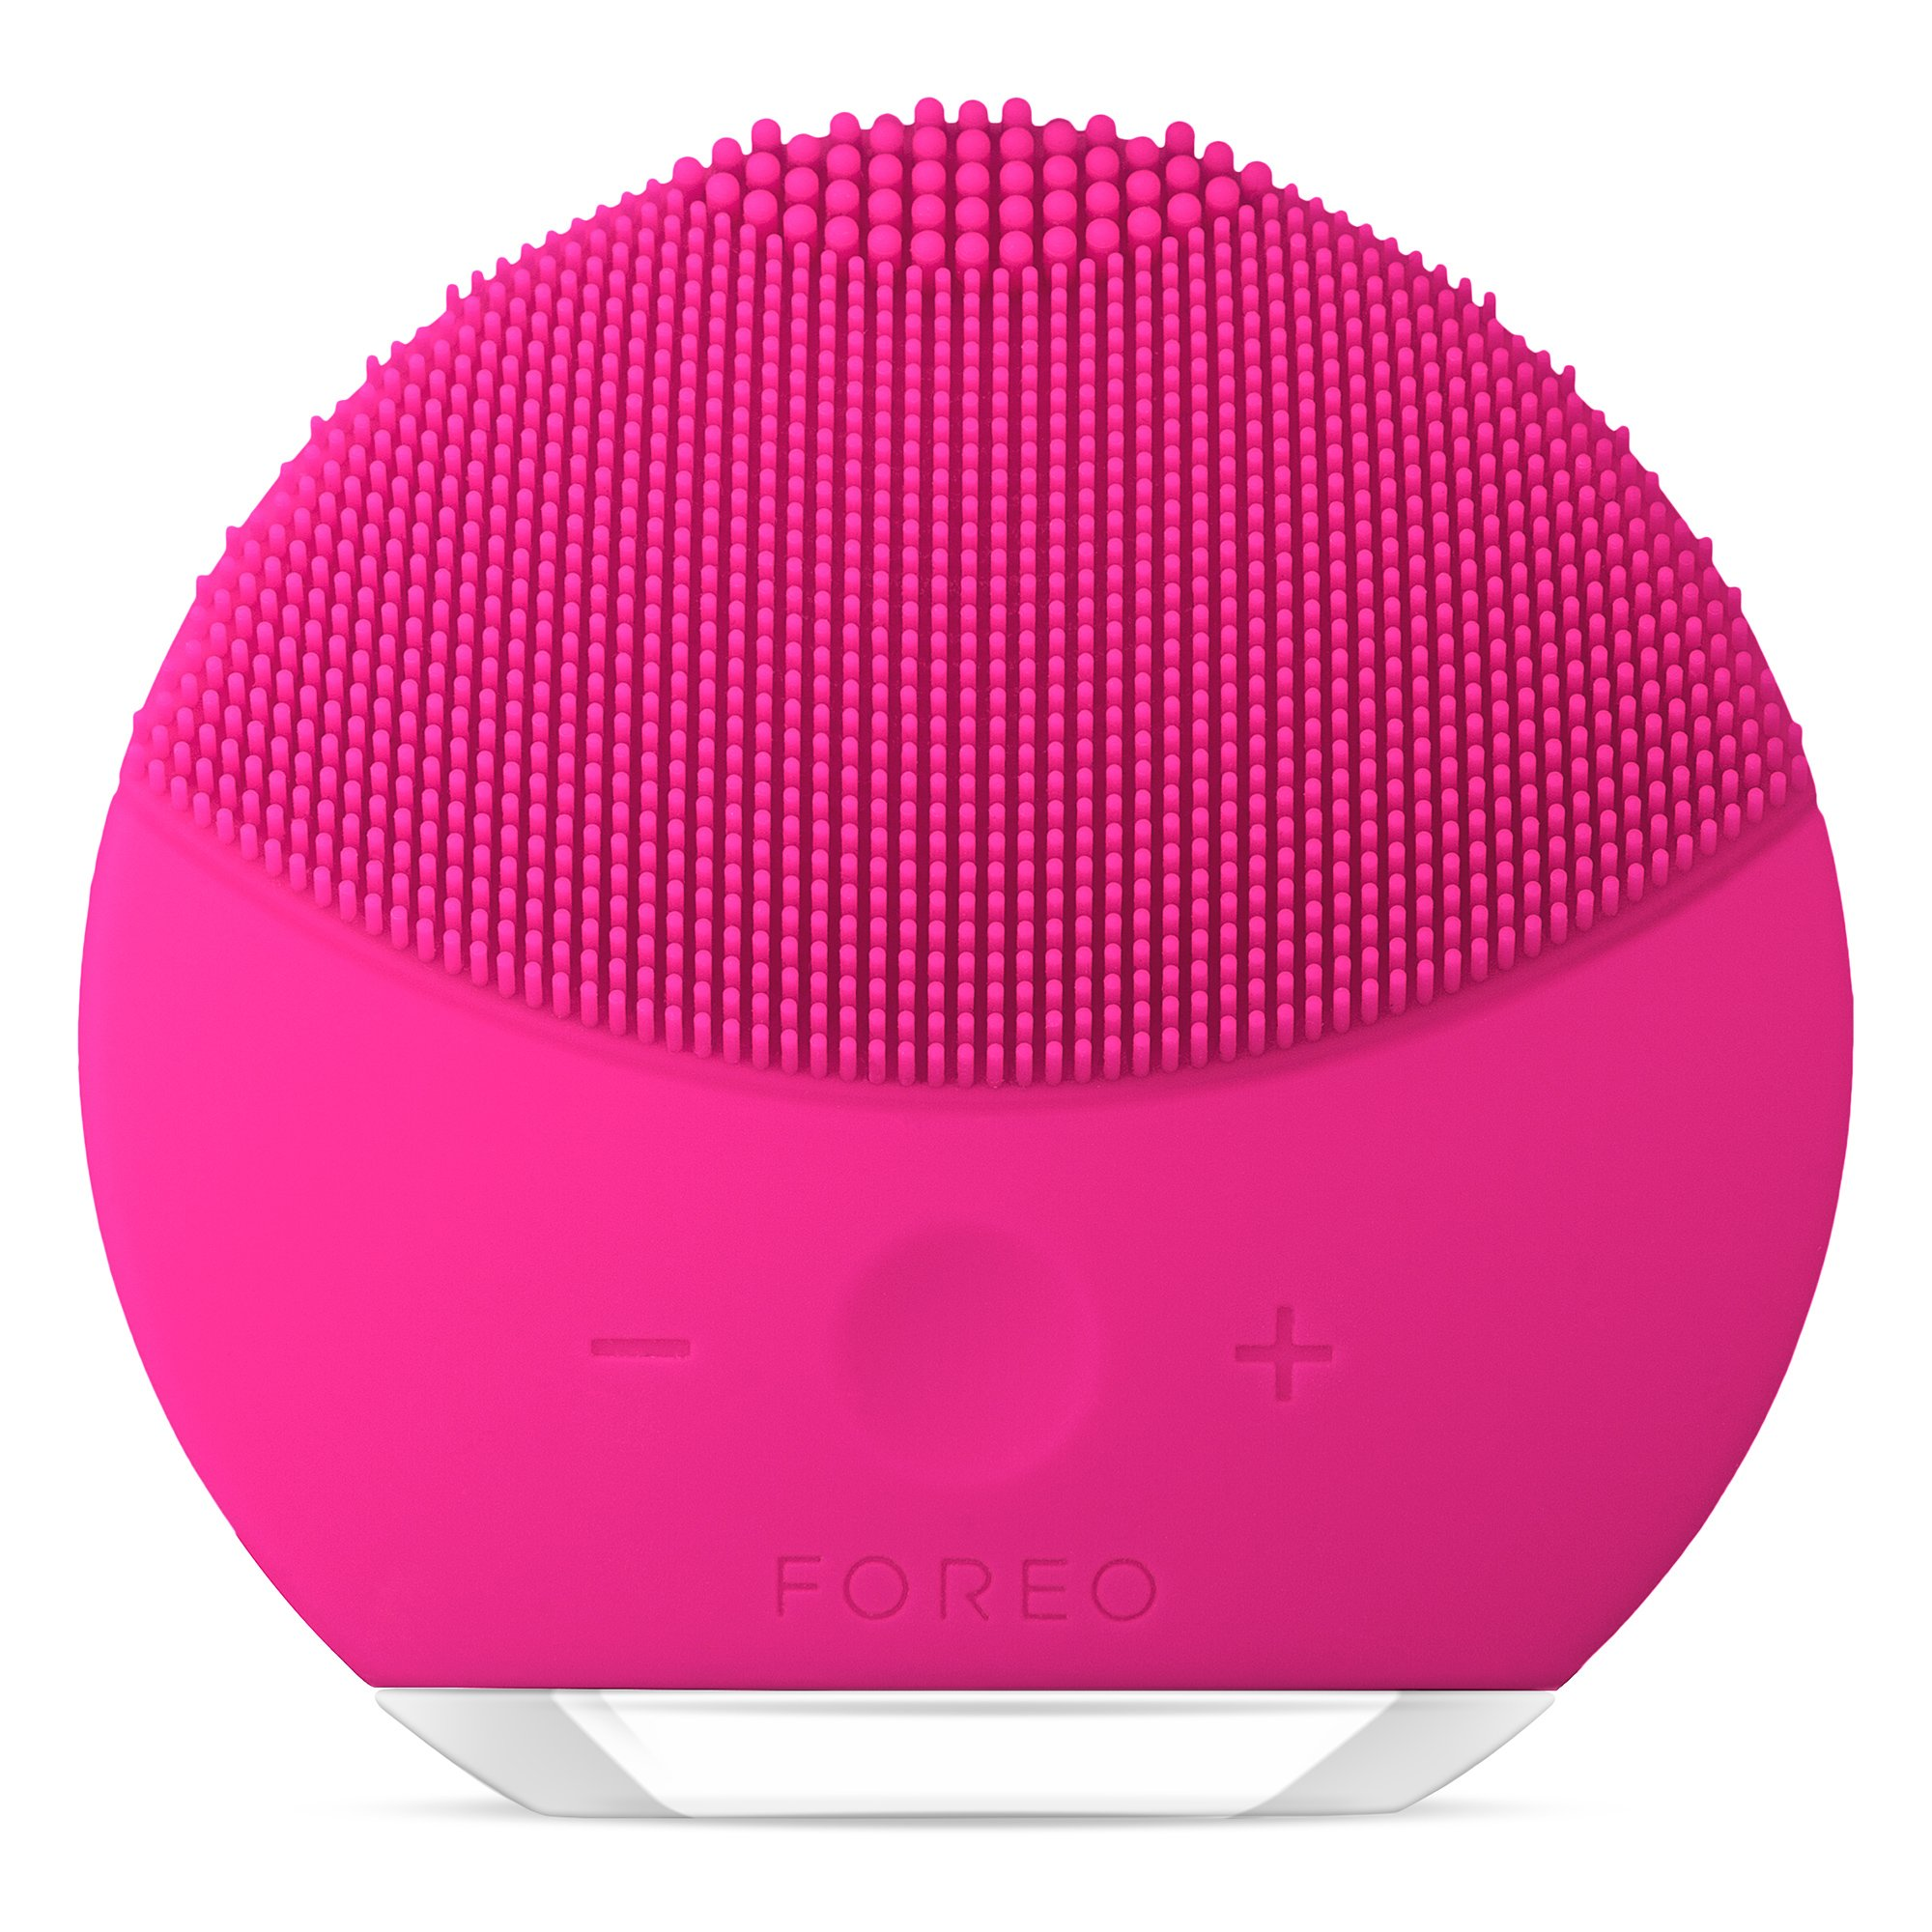 FOREO LUNA mini 2 Facial Cleansing Brush, Gentle Exfoliation and Sonic Cleansing for All Skin Types, Fuchsia by FOREO